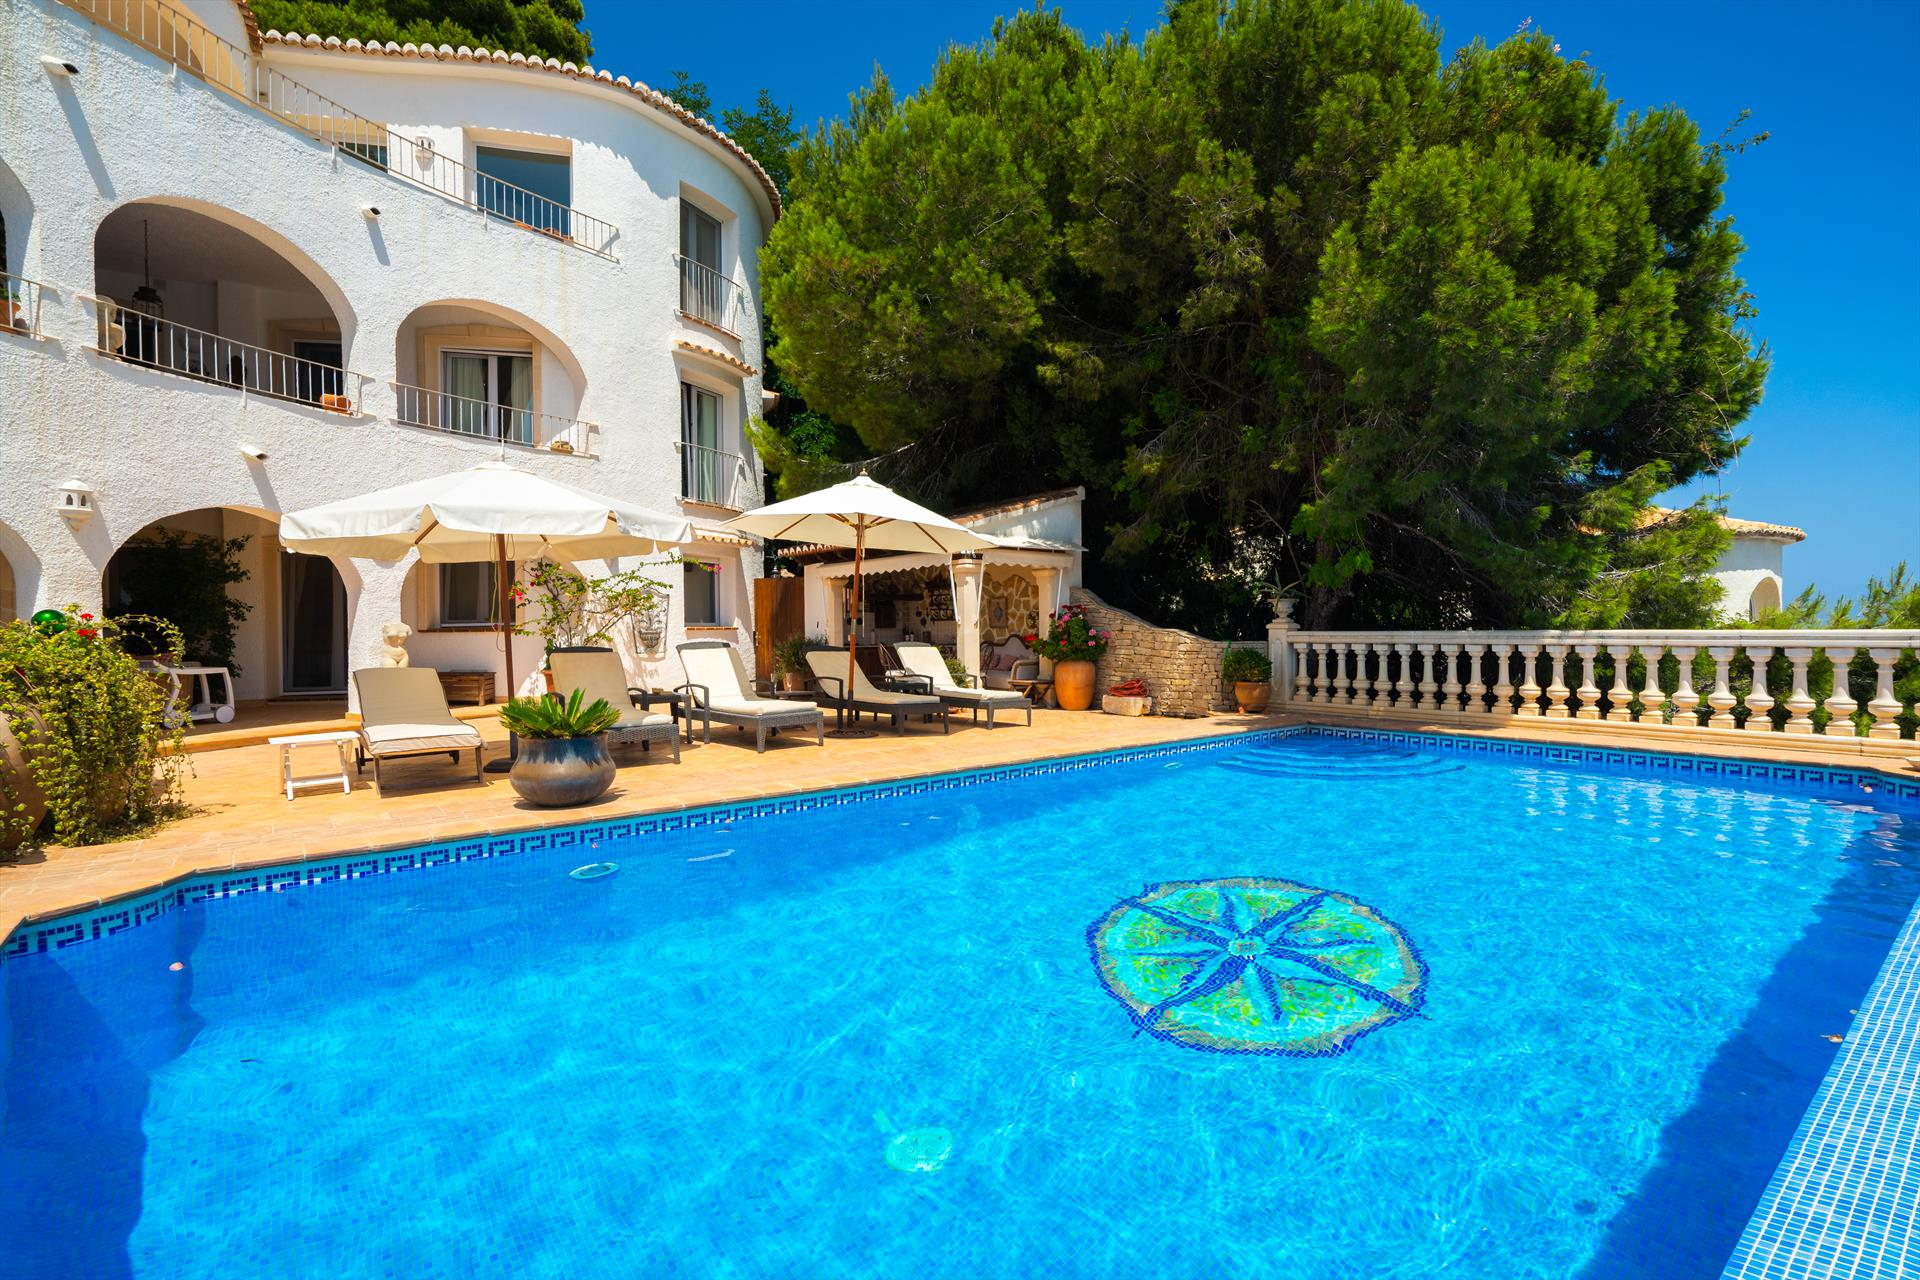 El Paraiso 12 pax, Large and classic villa in Javea, on the Costa Blanca, Spain  with private pool for 12 persons...